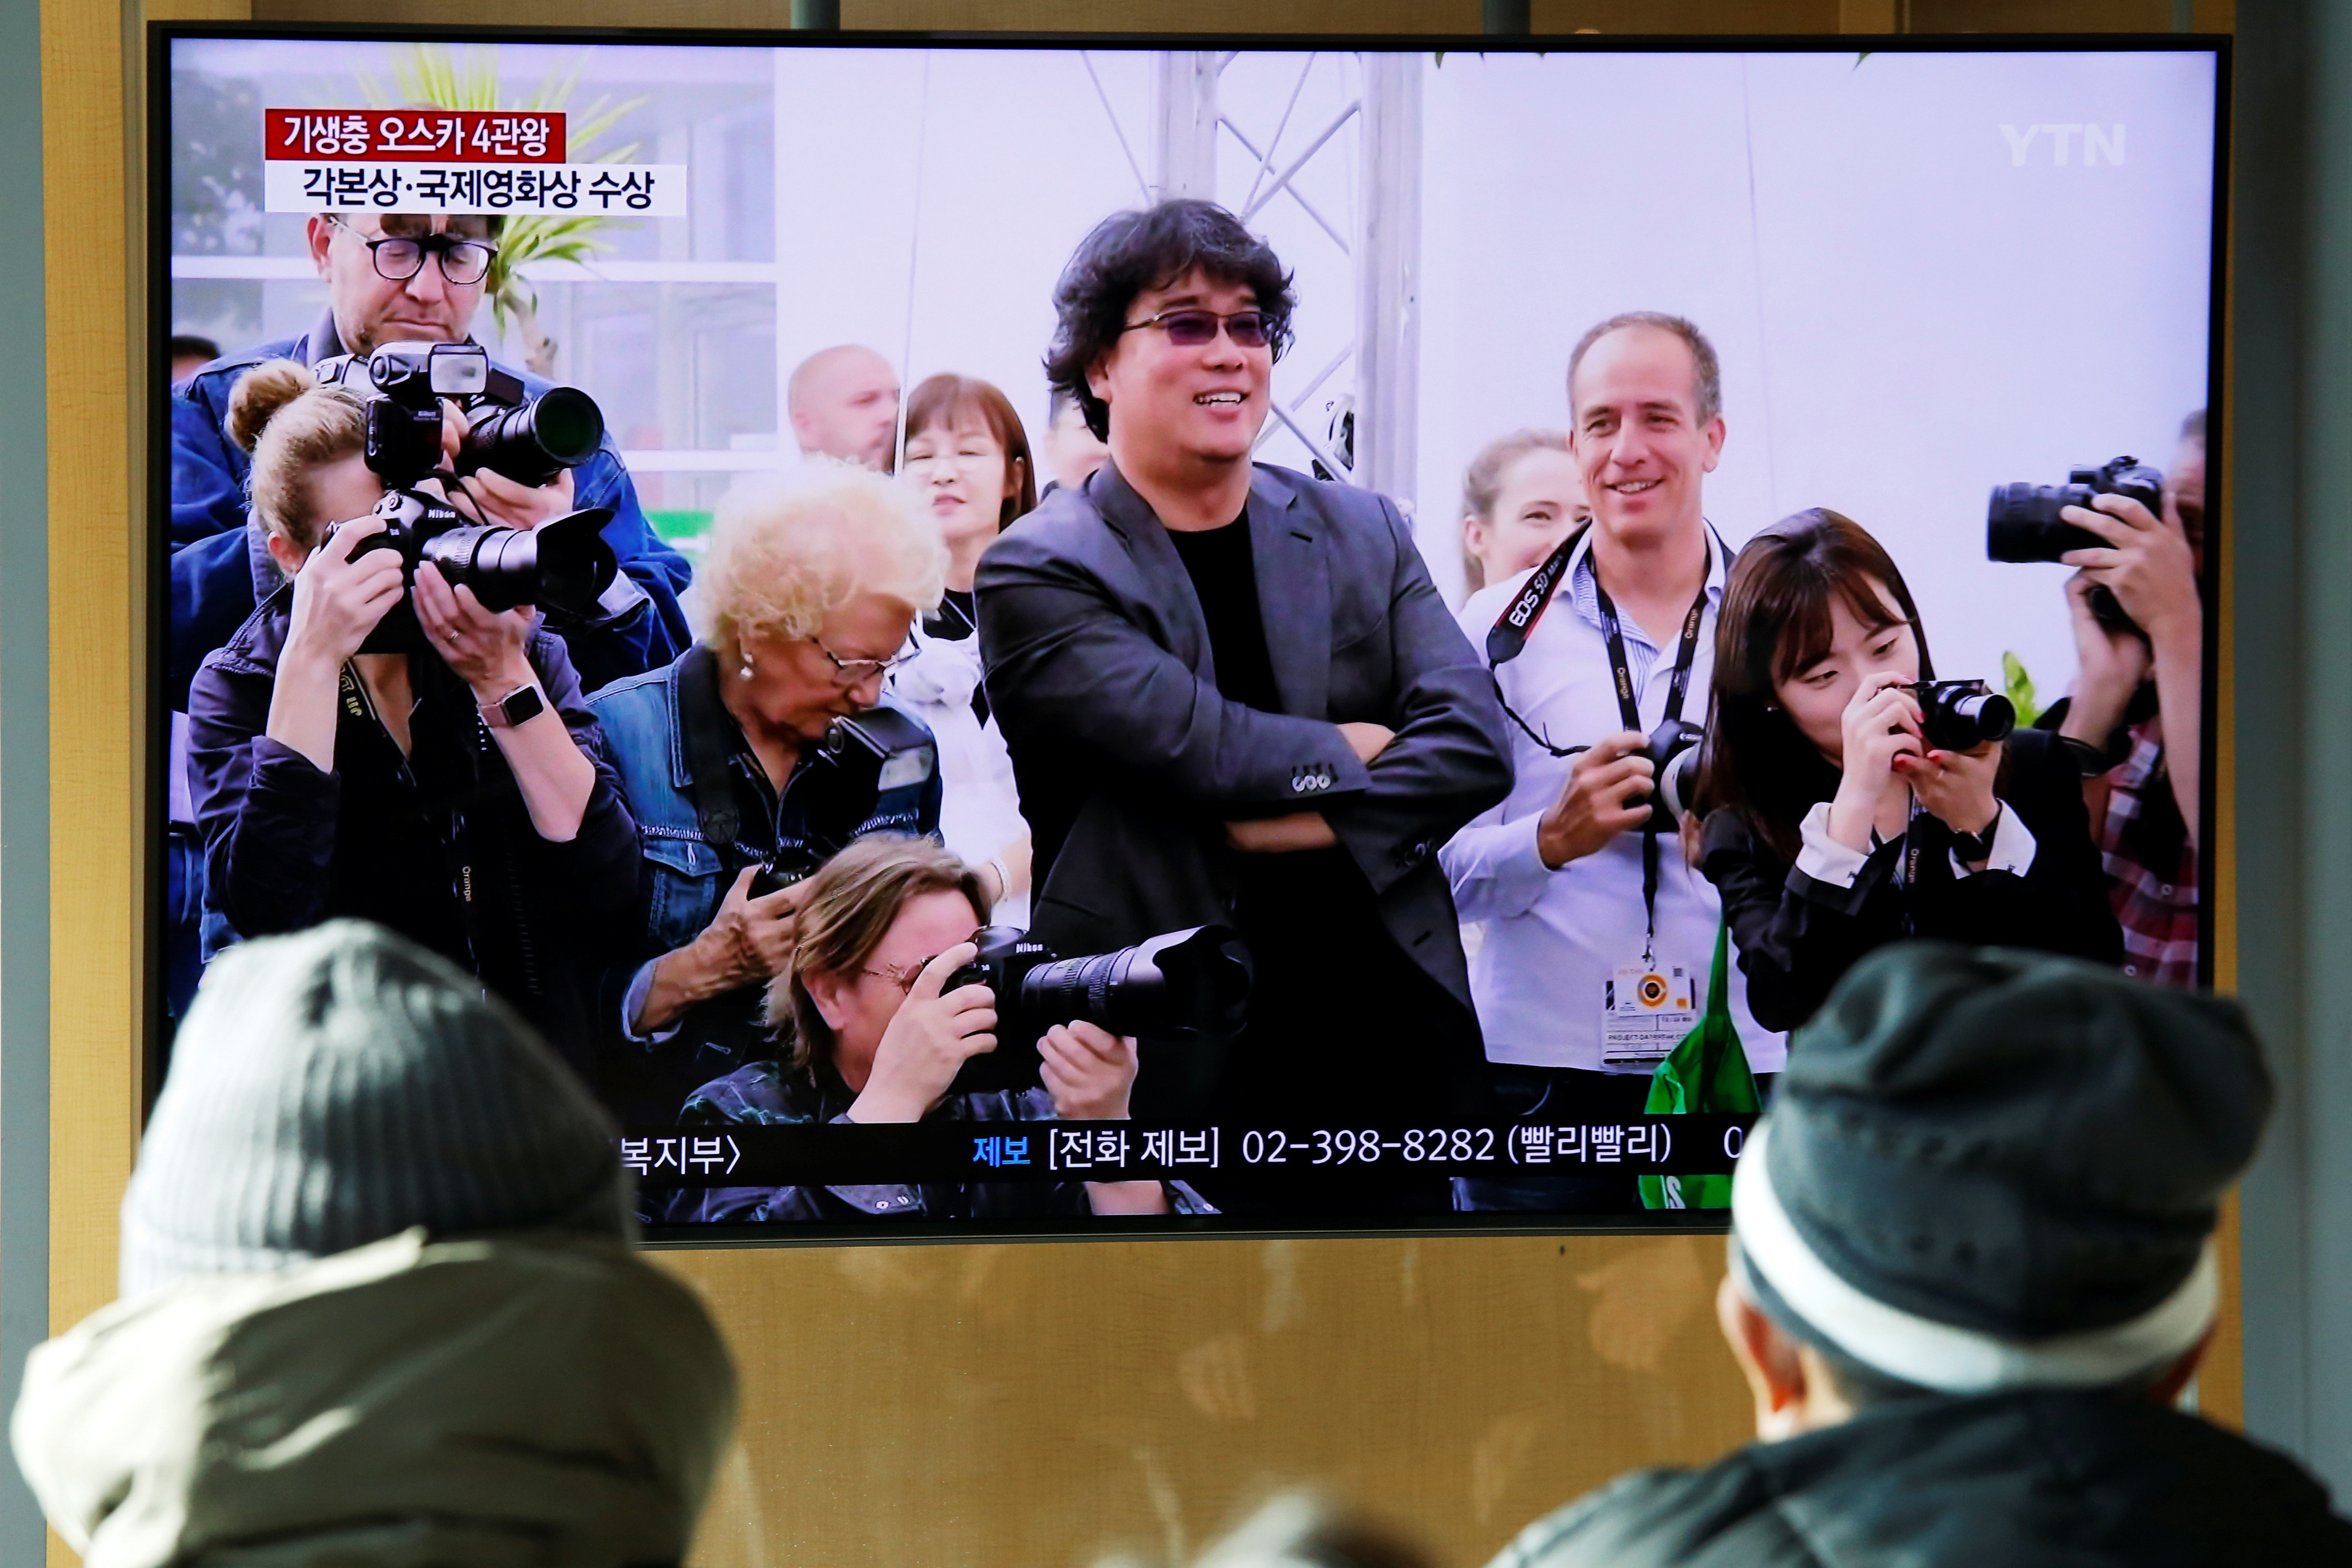 People watch a TV broadcasting a news report onSouth Korean directorBongJoon-ho whowonfourOscarswith his film